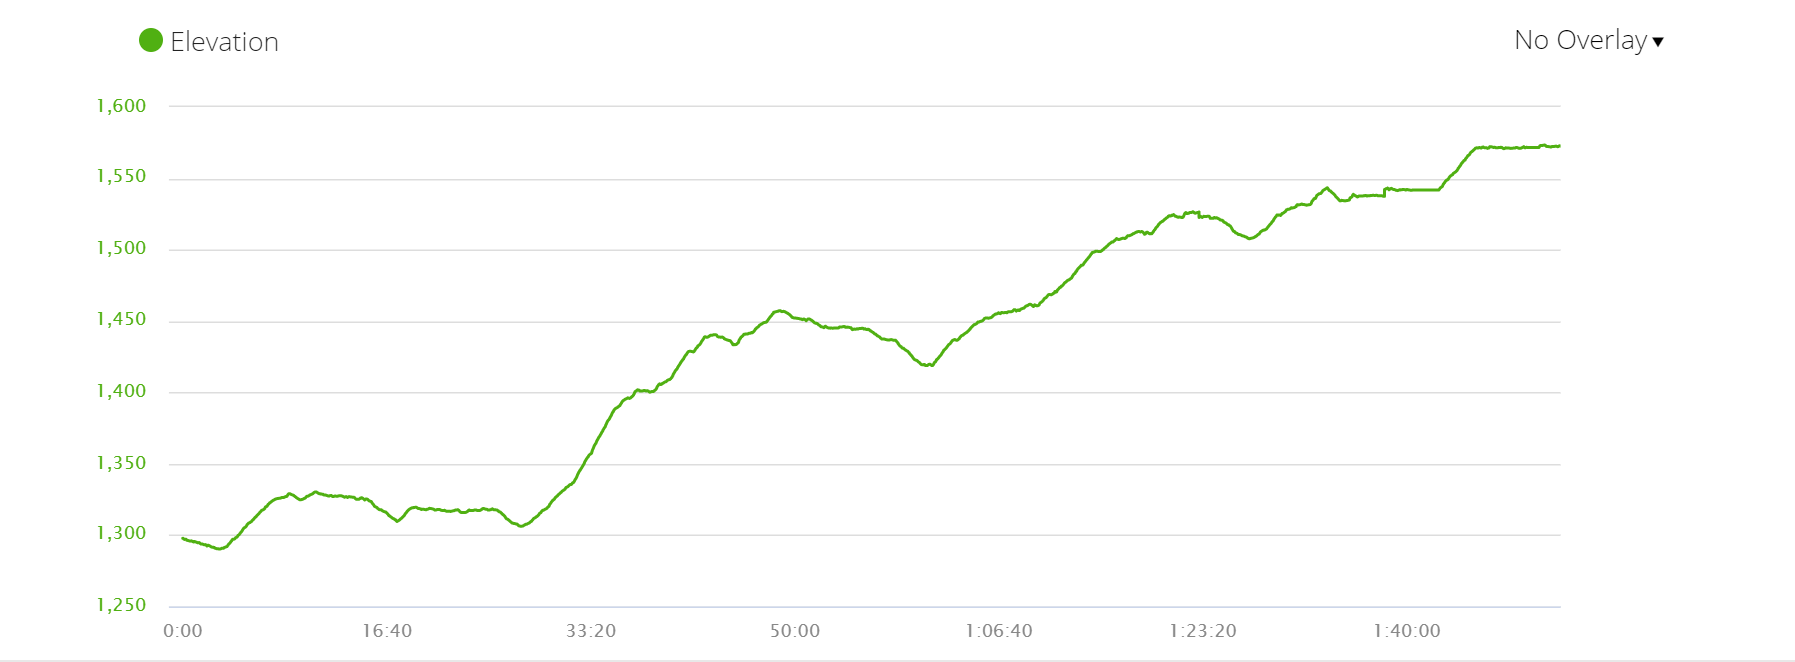 Elevation profile of the first part of Day 2 on Panchase trek from Pumdi to Peace Home tea house